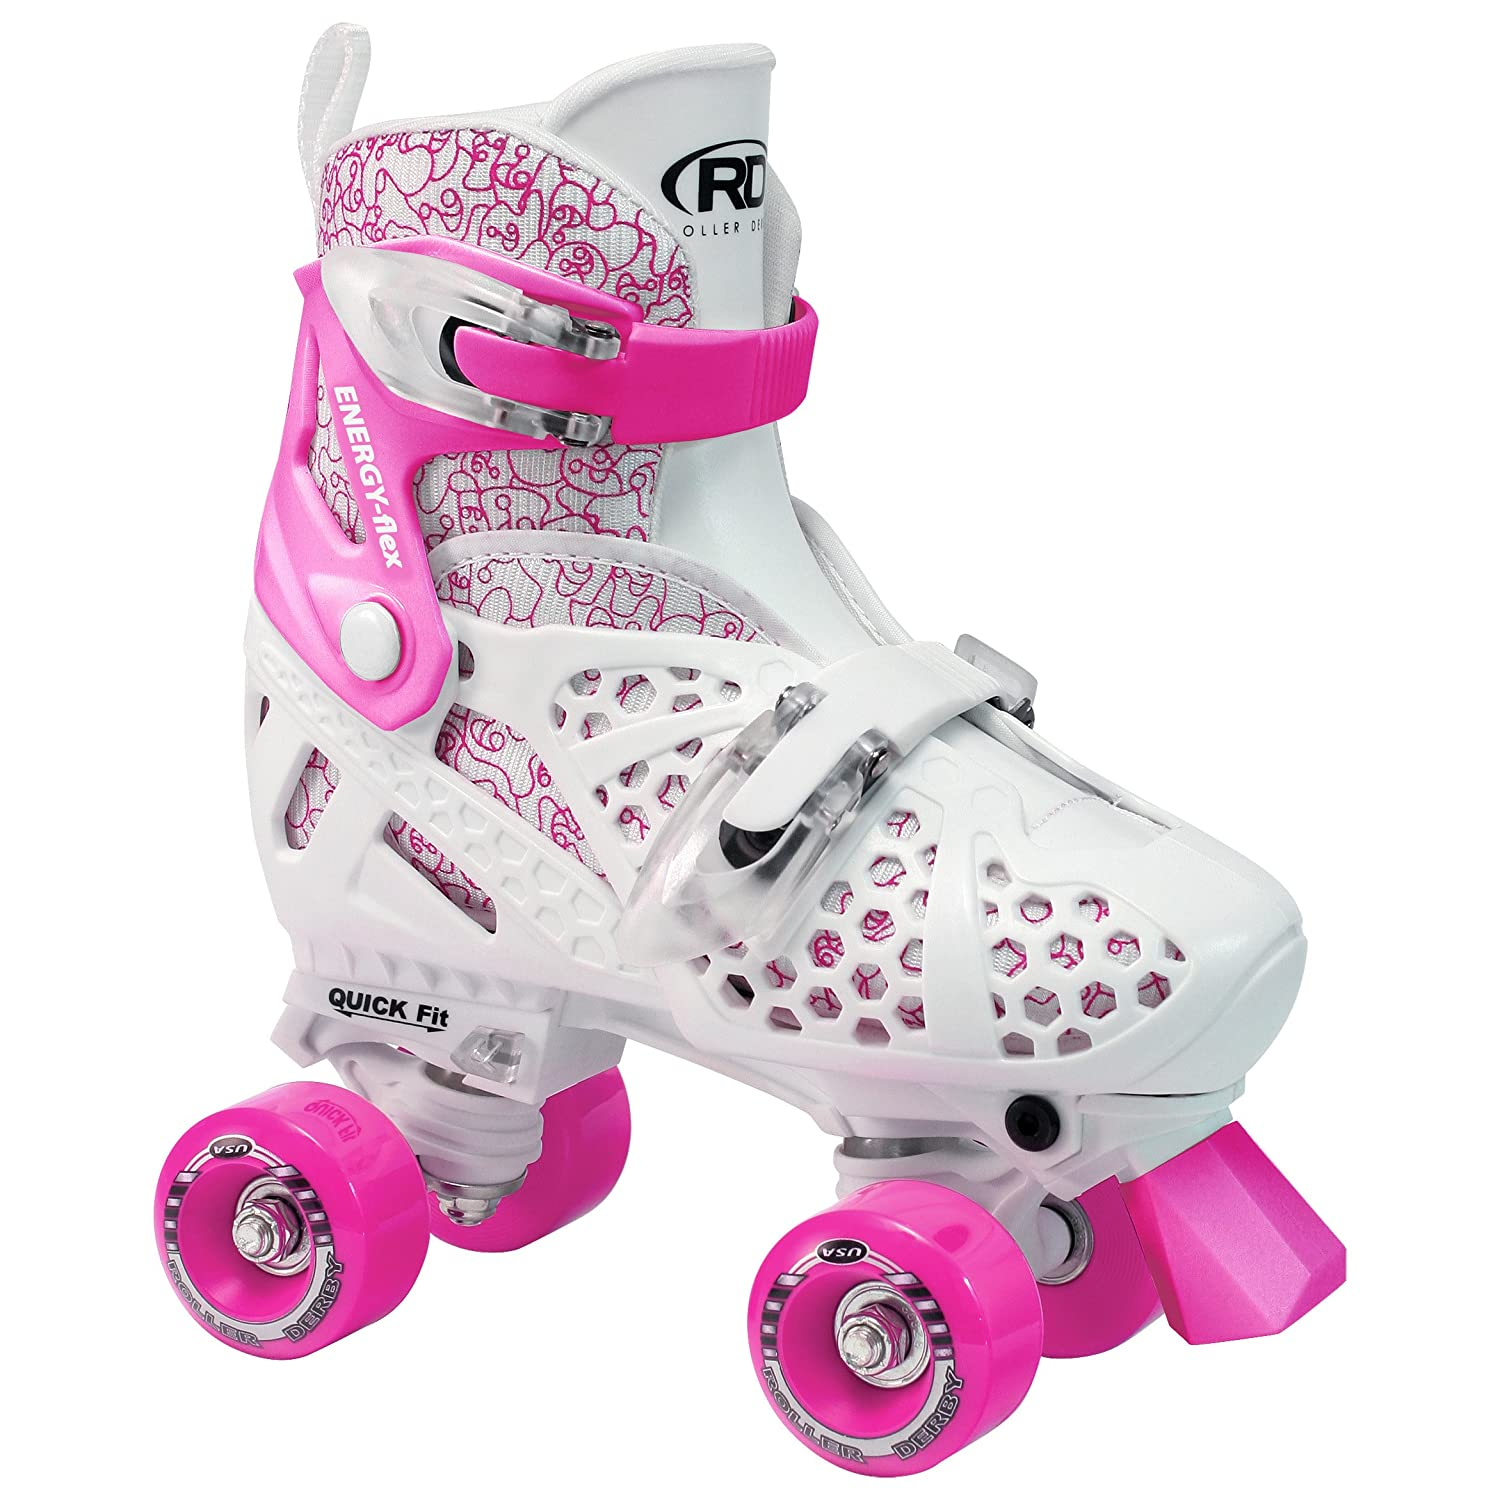 Roller Trac Start Girls - Patines de 4 ruedas para niño (talla regulable): Amazon.es: Deportes y aire libre